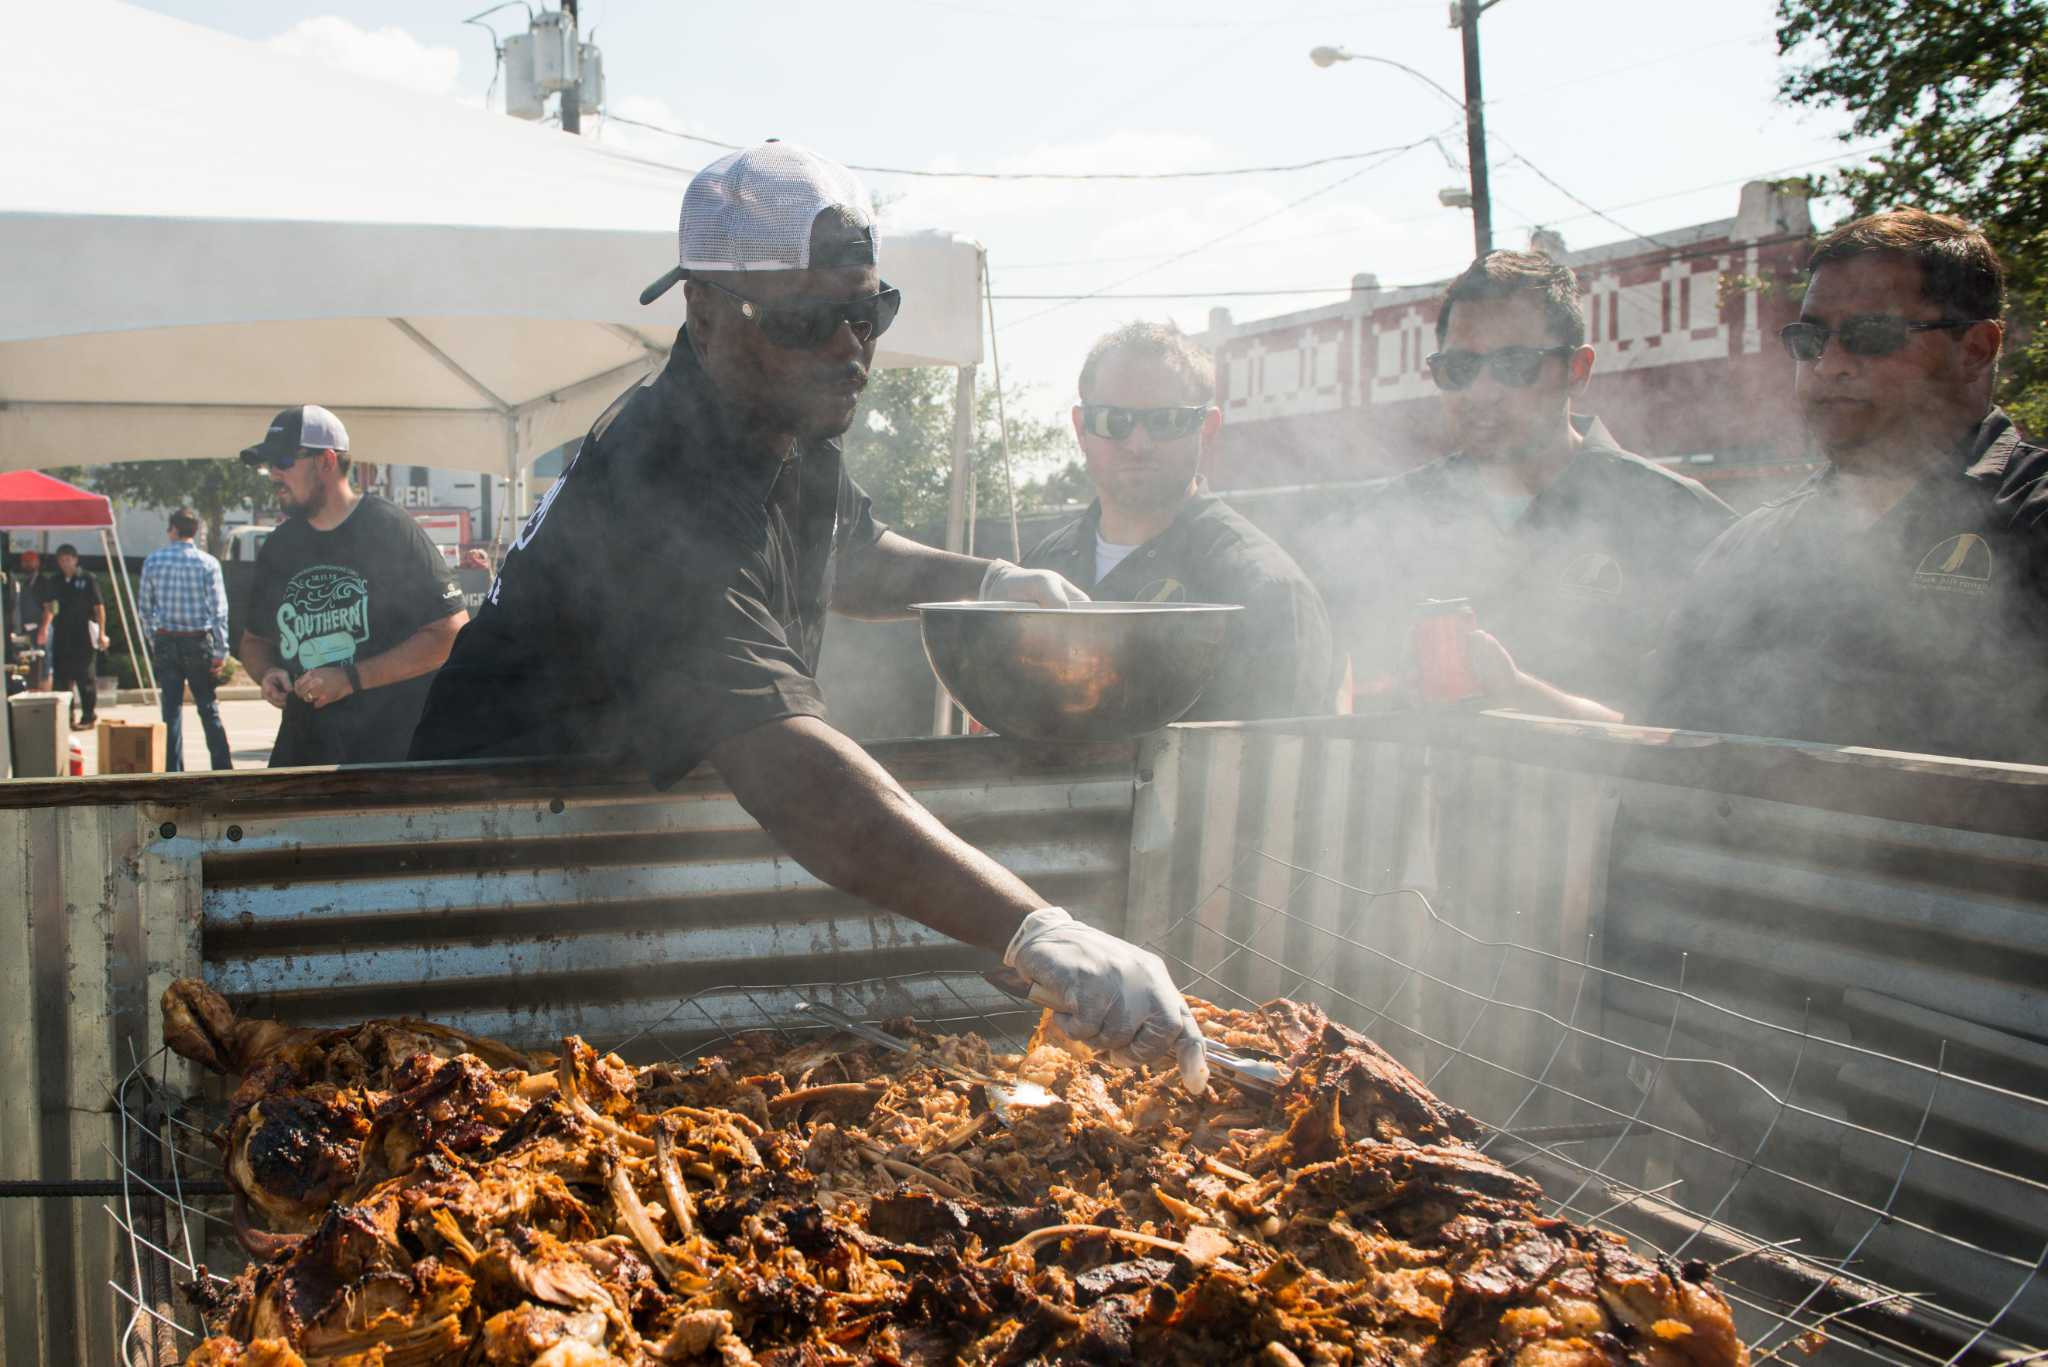 Whole-hog barbecue is making its way to Texas